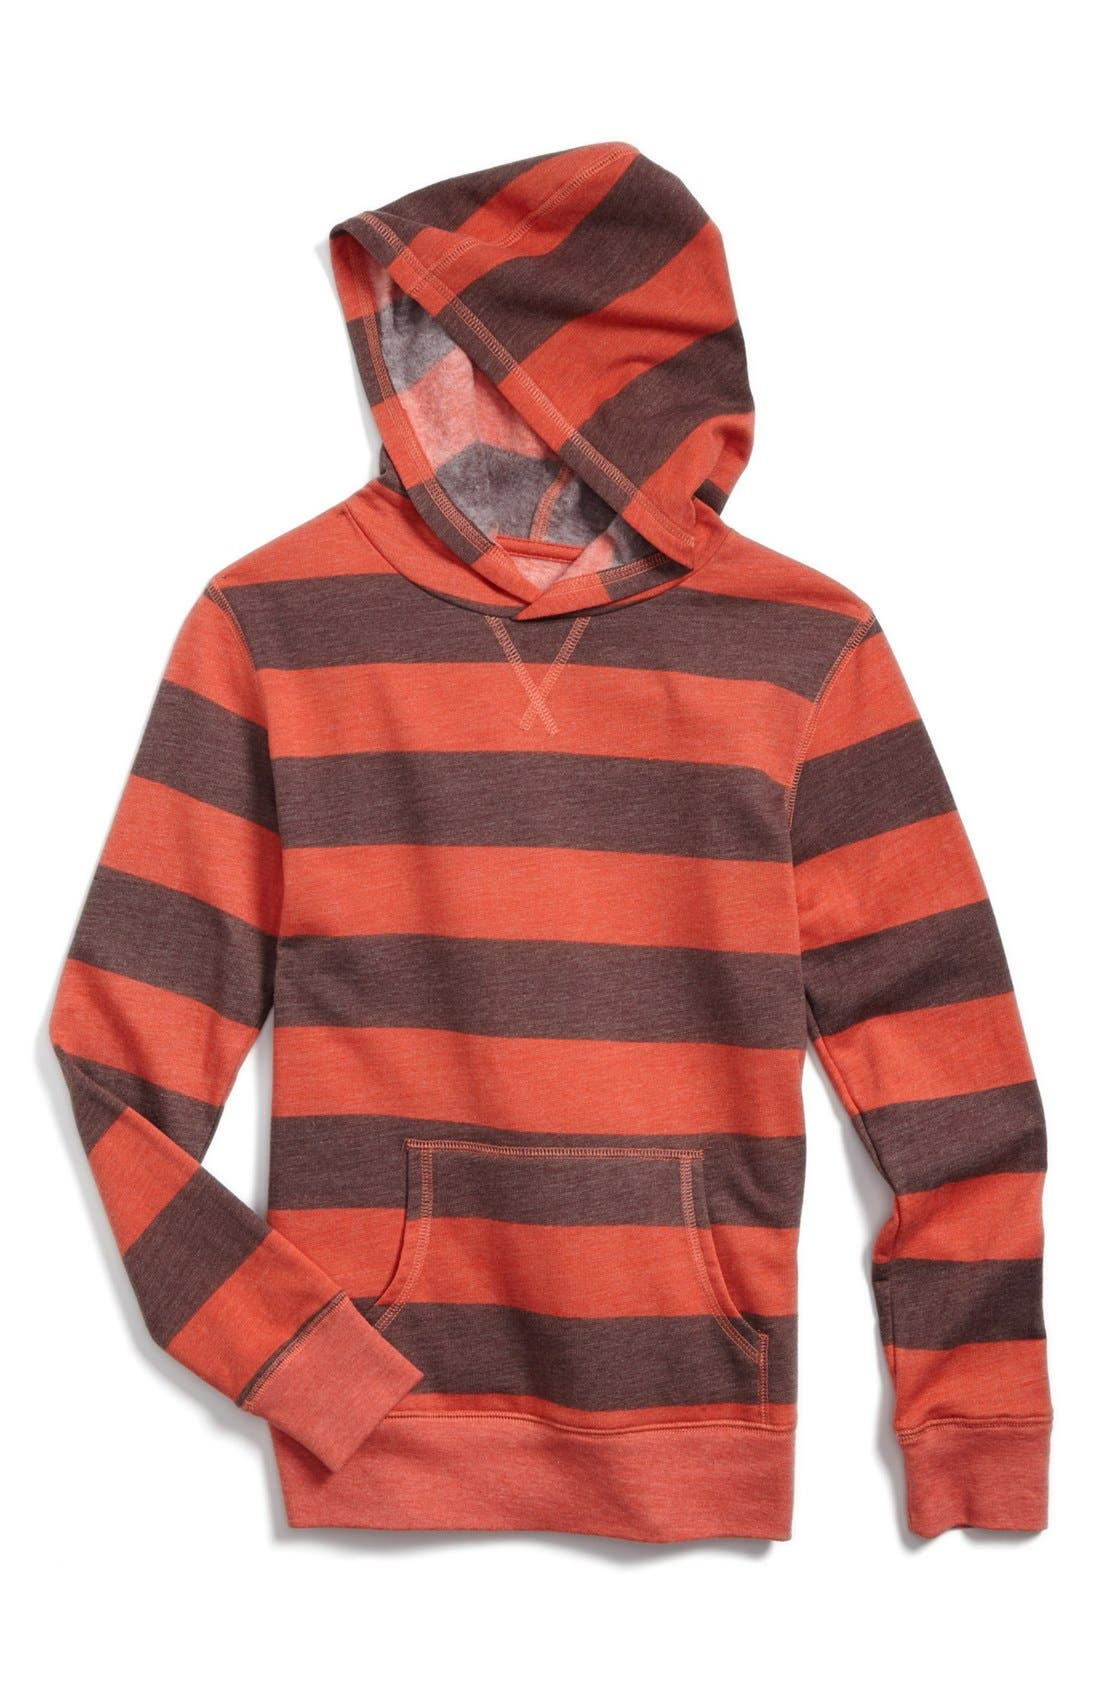 Alternate Image 1 Selected - Tucker + Tate 'Oak Bay' Hoodie (Big Boys)